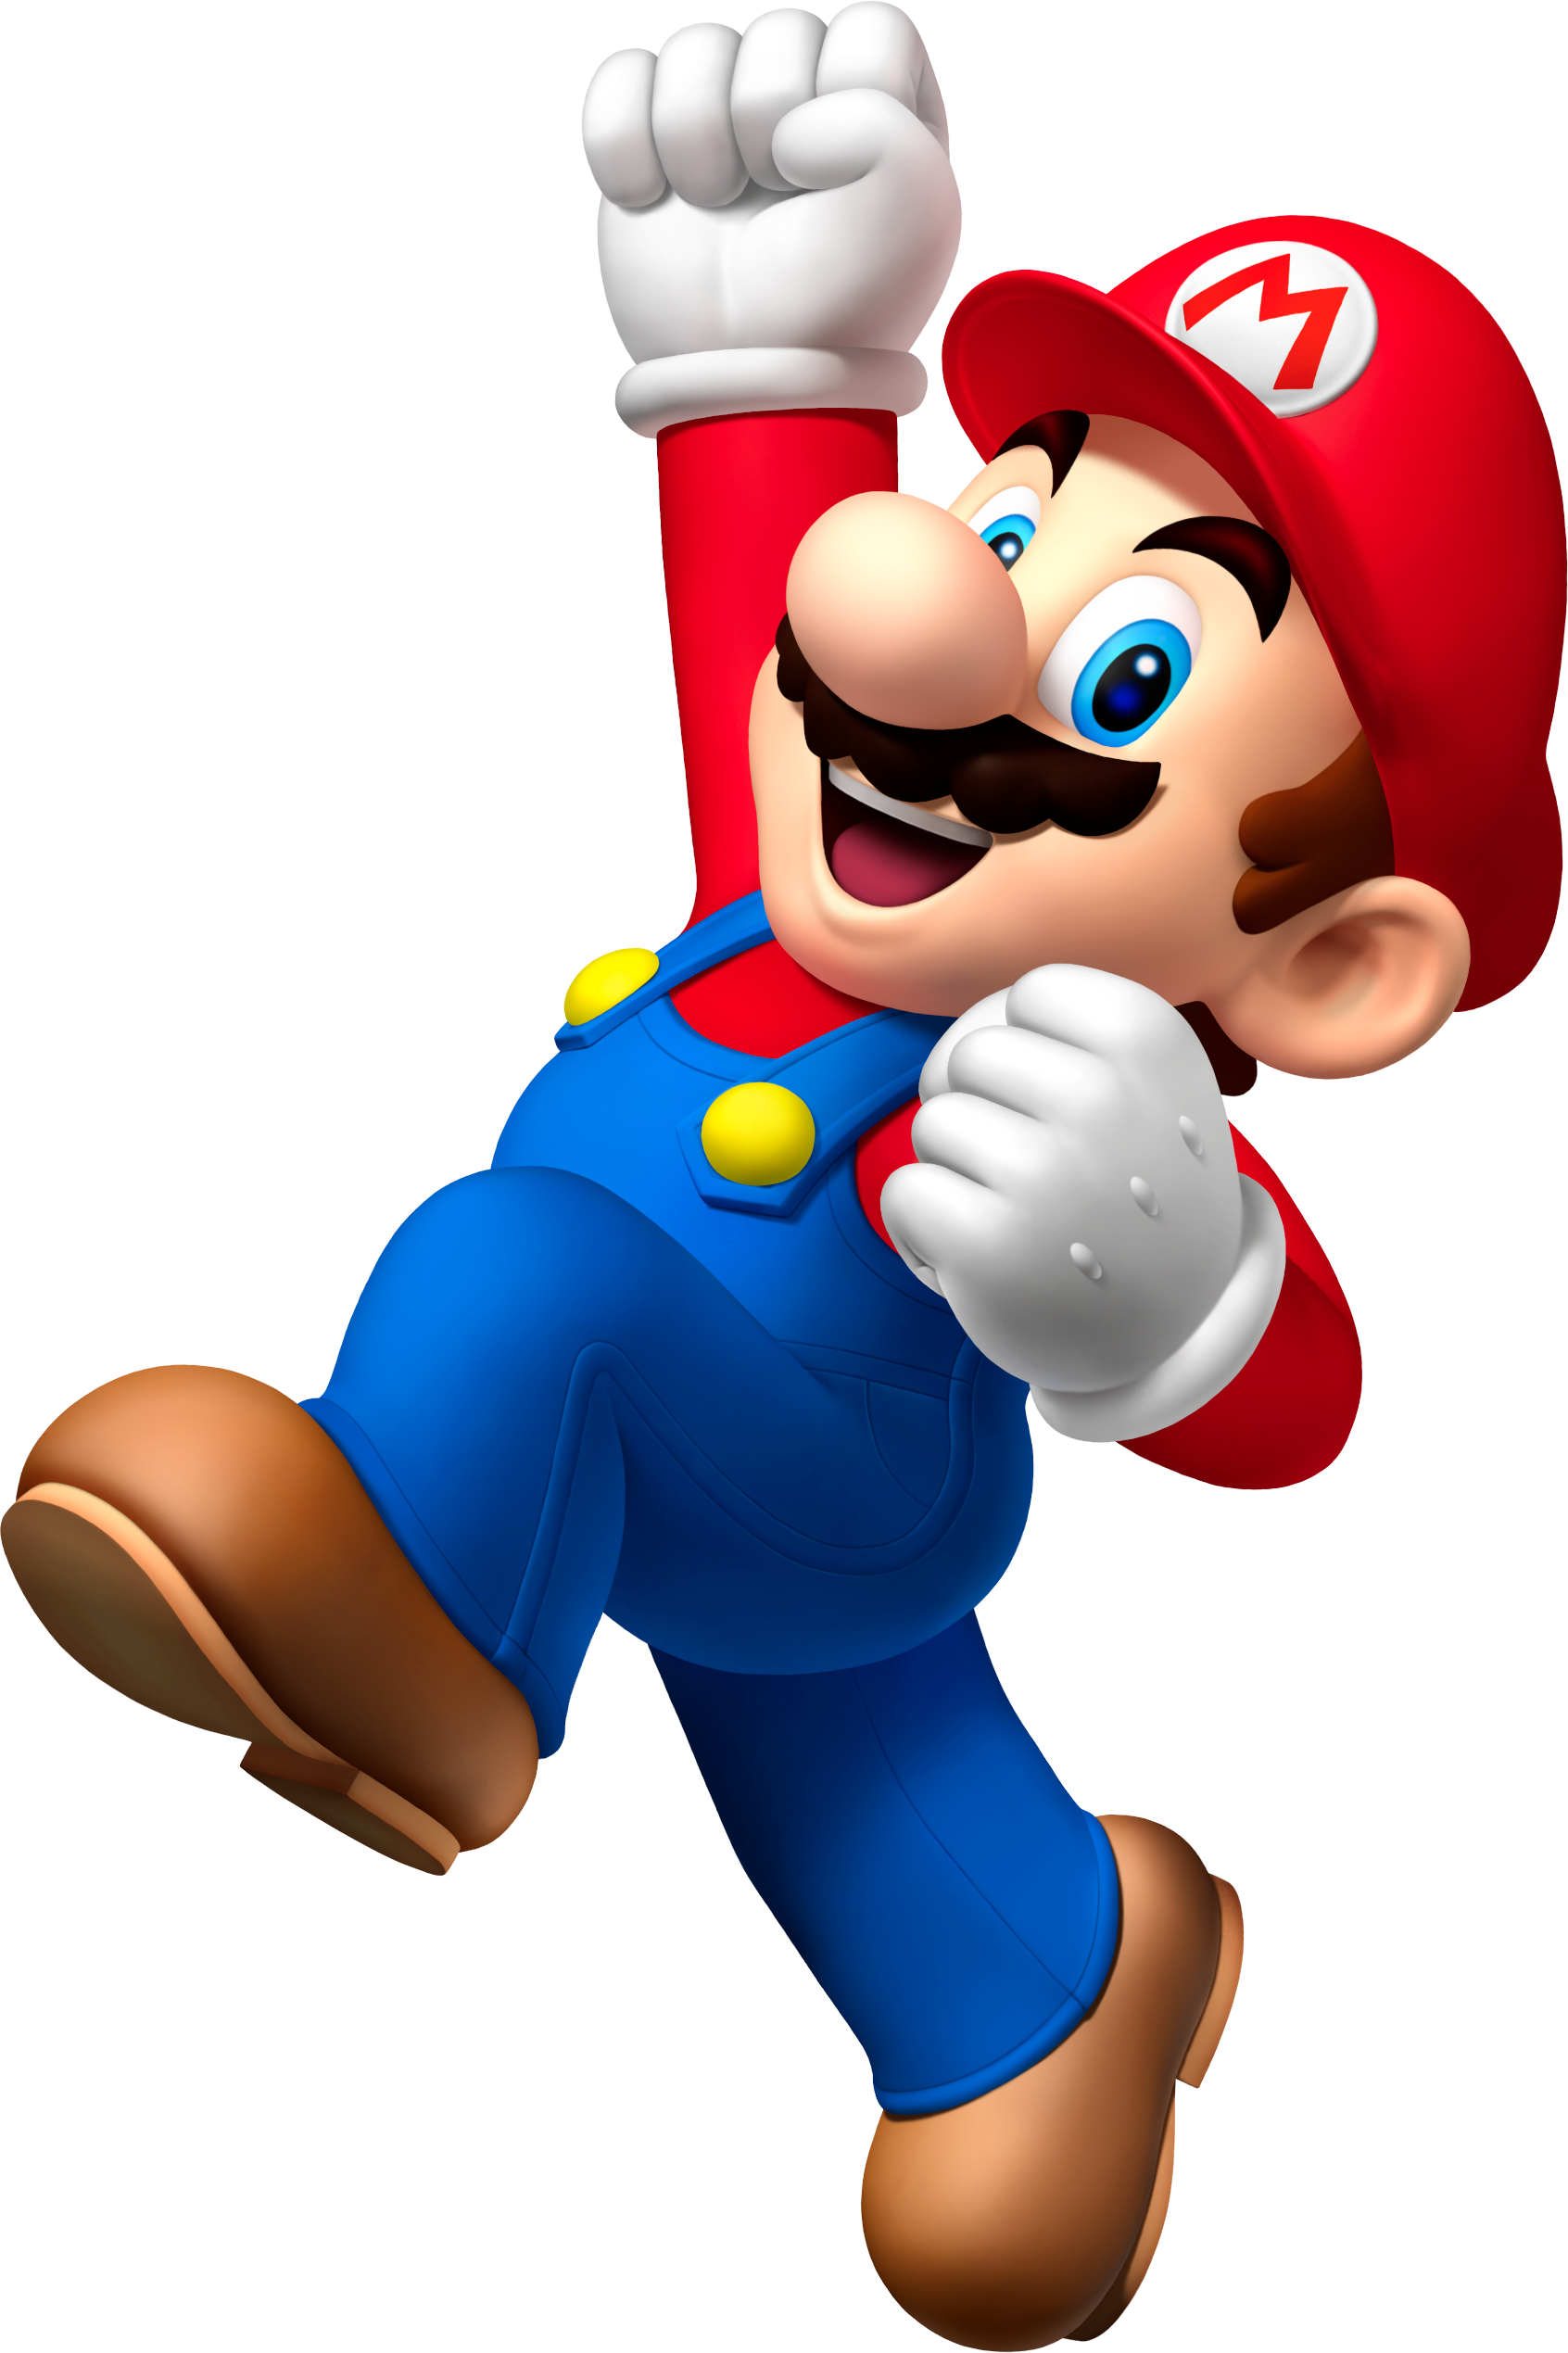 Mario Is Claimed To Be The Most Famous Video Game Character Ever And It Cannot Be Denied That He Is Description Mario Bros Mario Bros Party Super Mario Bros